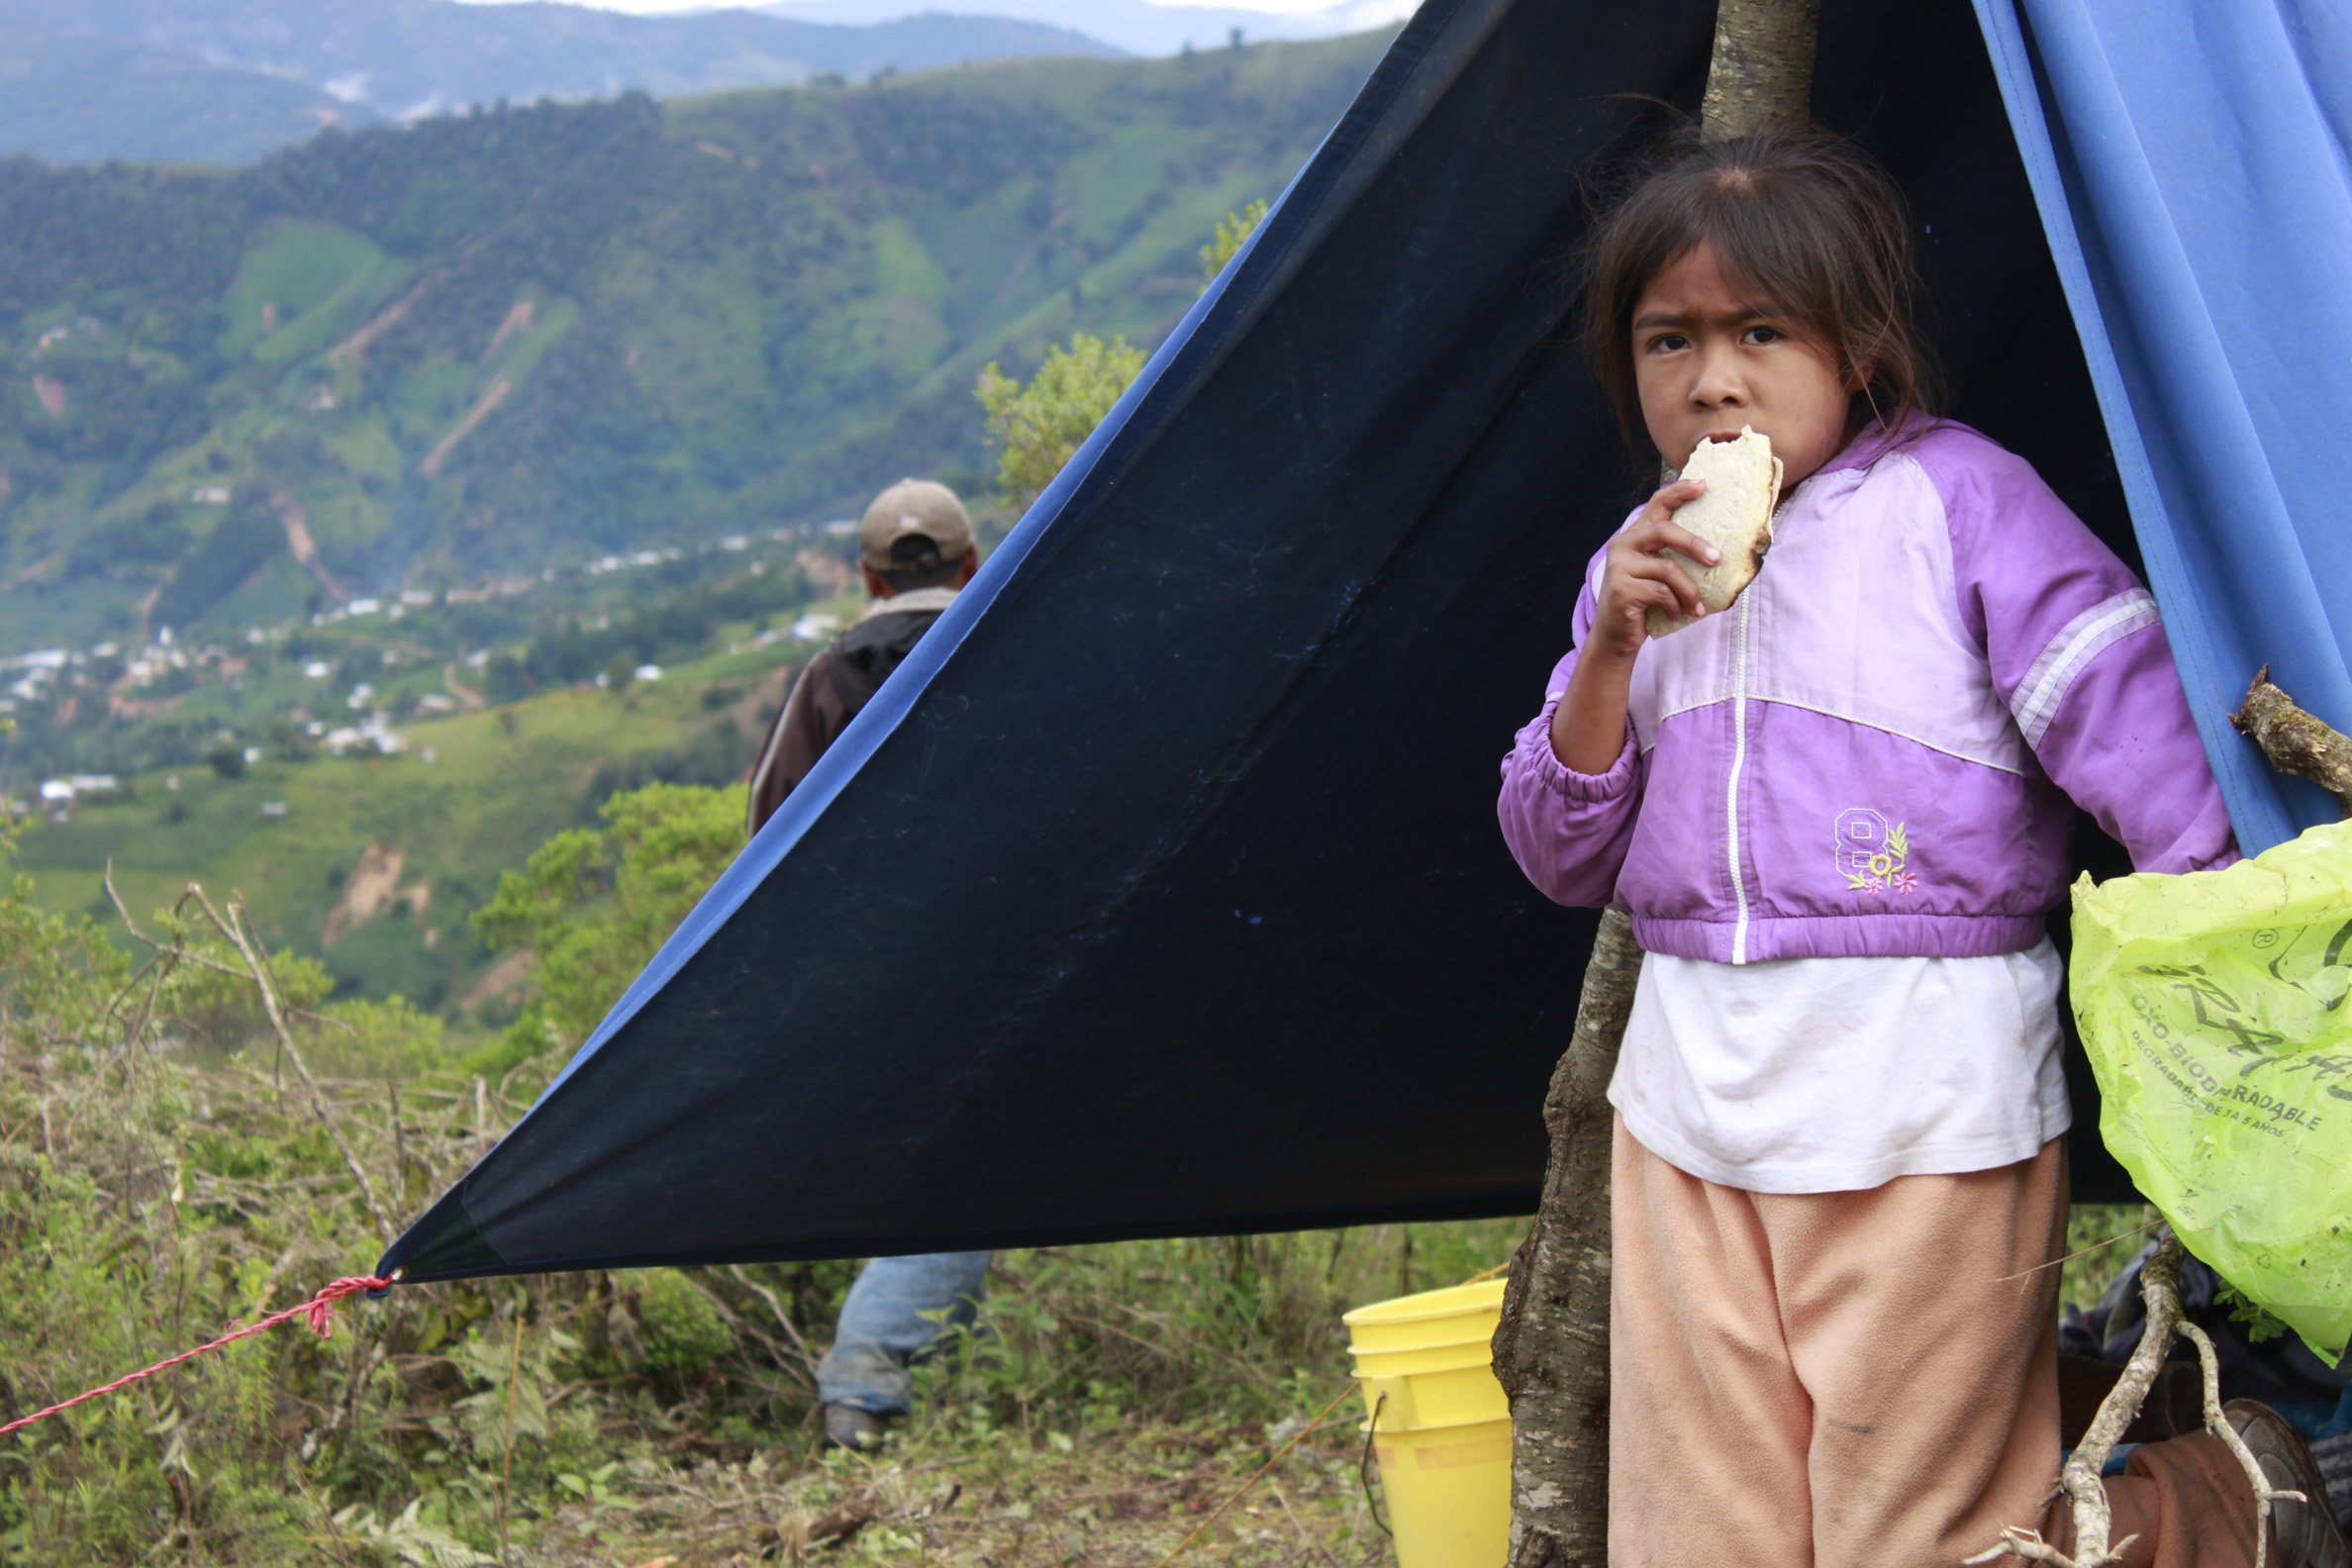 Camp of indigenous people displaced by storms. Photo from The Tlachinollan Human Rights Center used with permission.